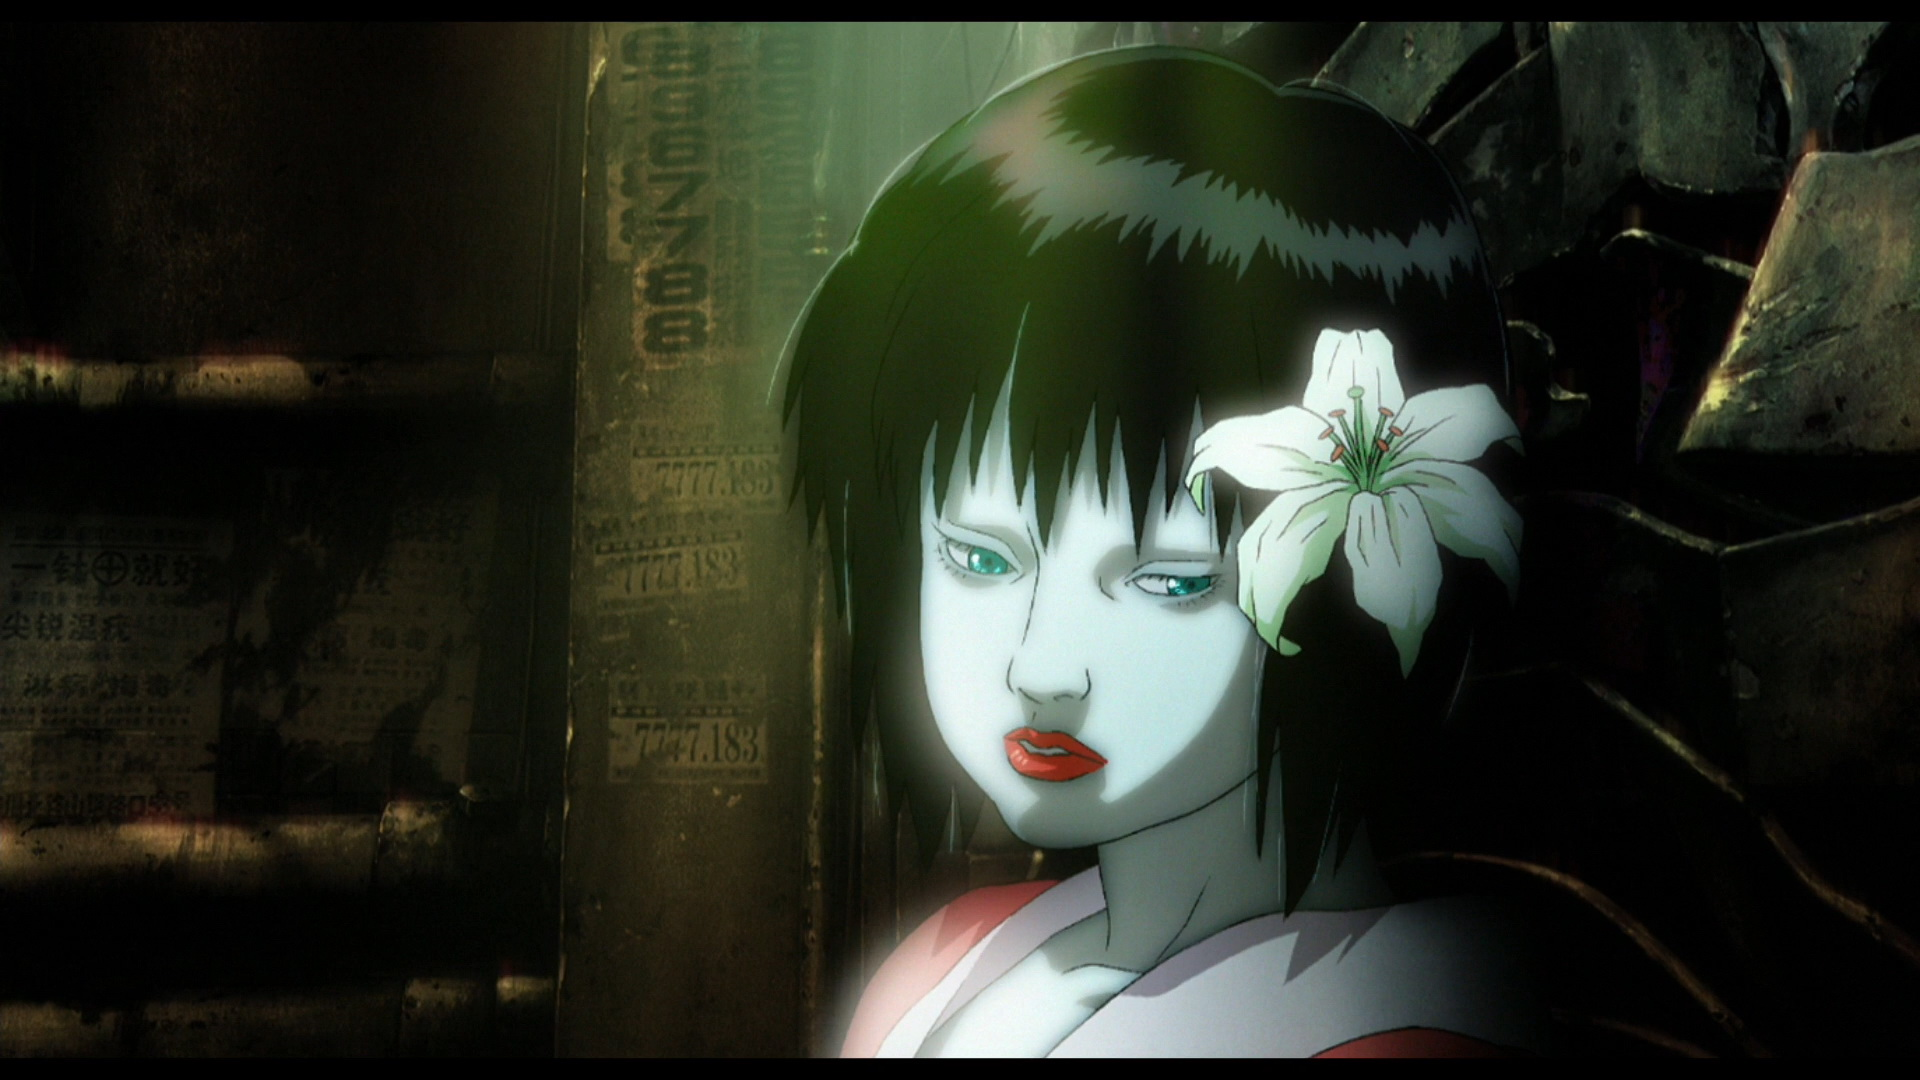 Ghost Girl Horror Wallpaper For Iphone Ghost In The Shell Hd Wallpaper Background Image